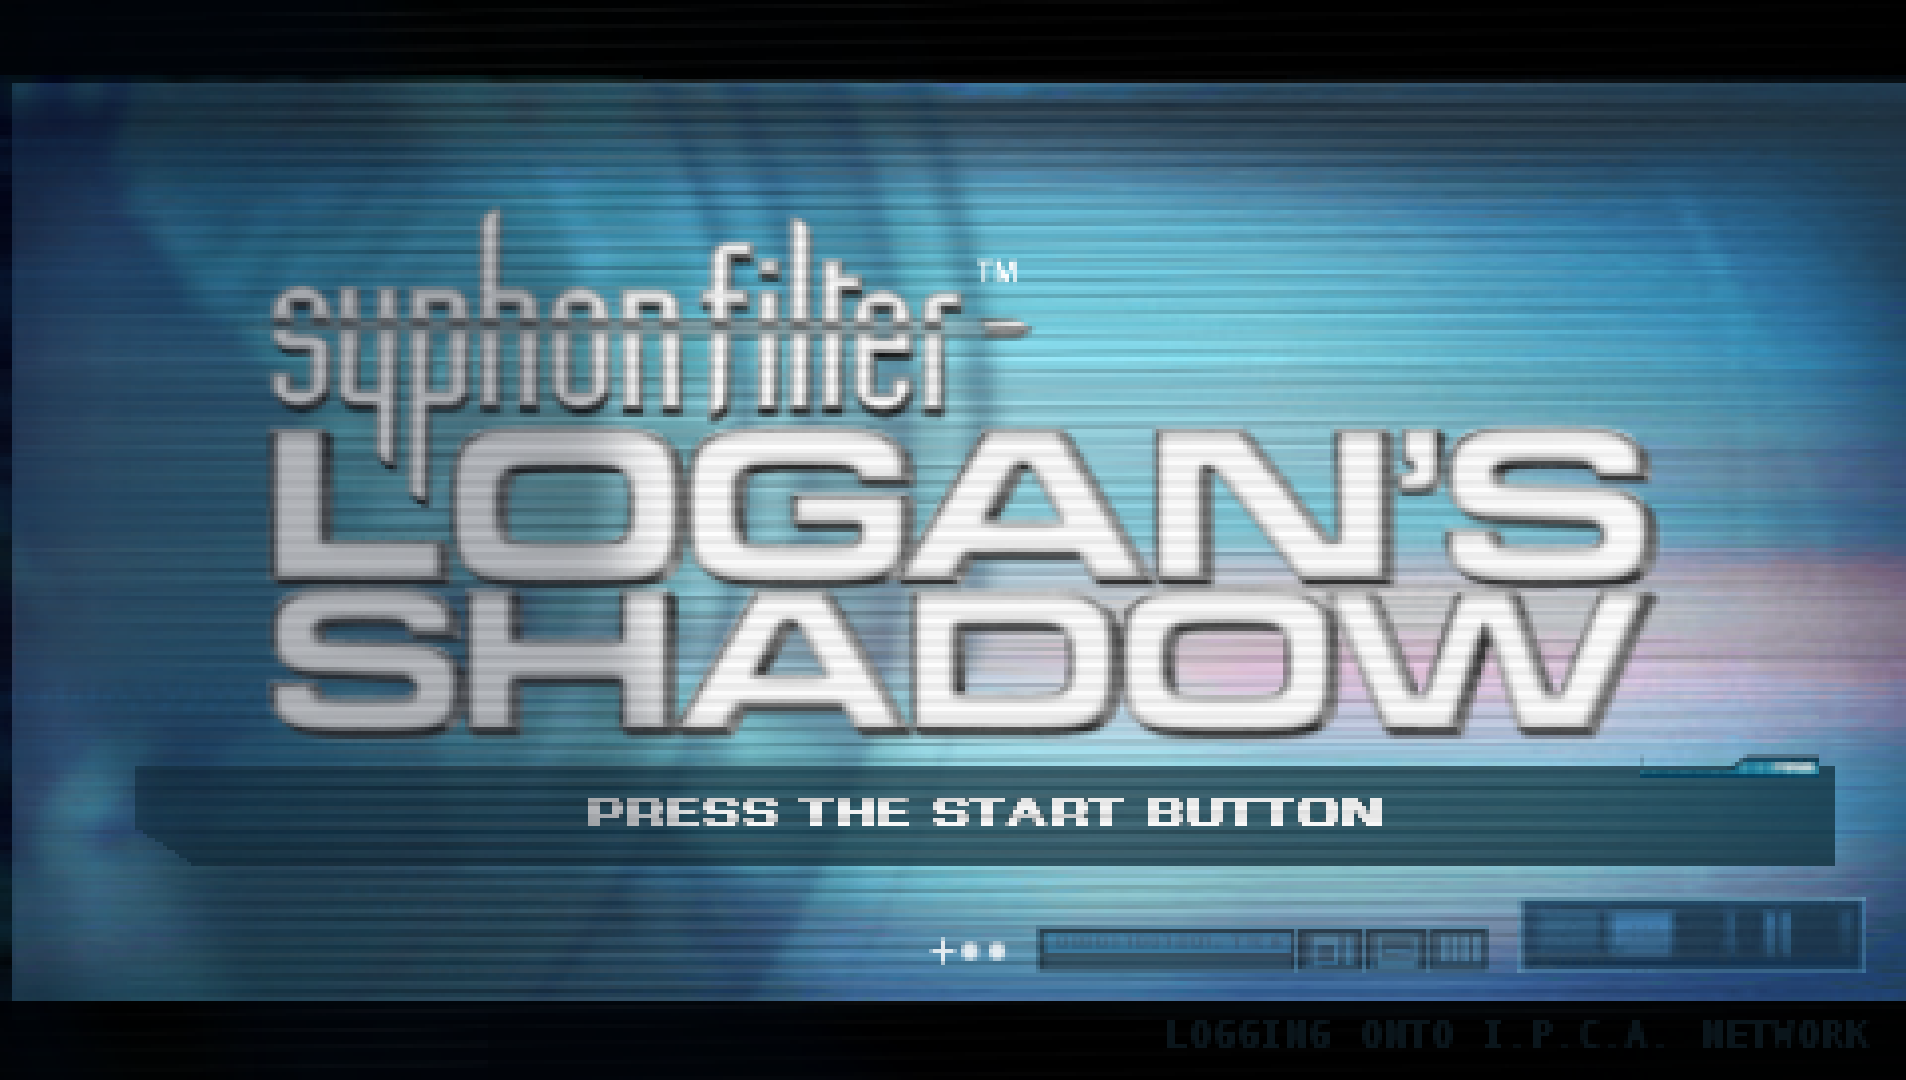 https://s3.eu-west-3.amazonaws.com/games.anthony-dessalles.com/Syphon Filter Logan's Shadow PSP 2021 - Screenshots/Syphon Filter Logan's Shadow-210111-120131.png